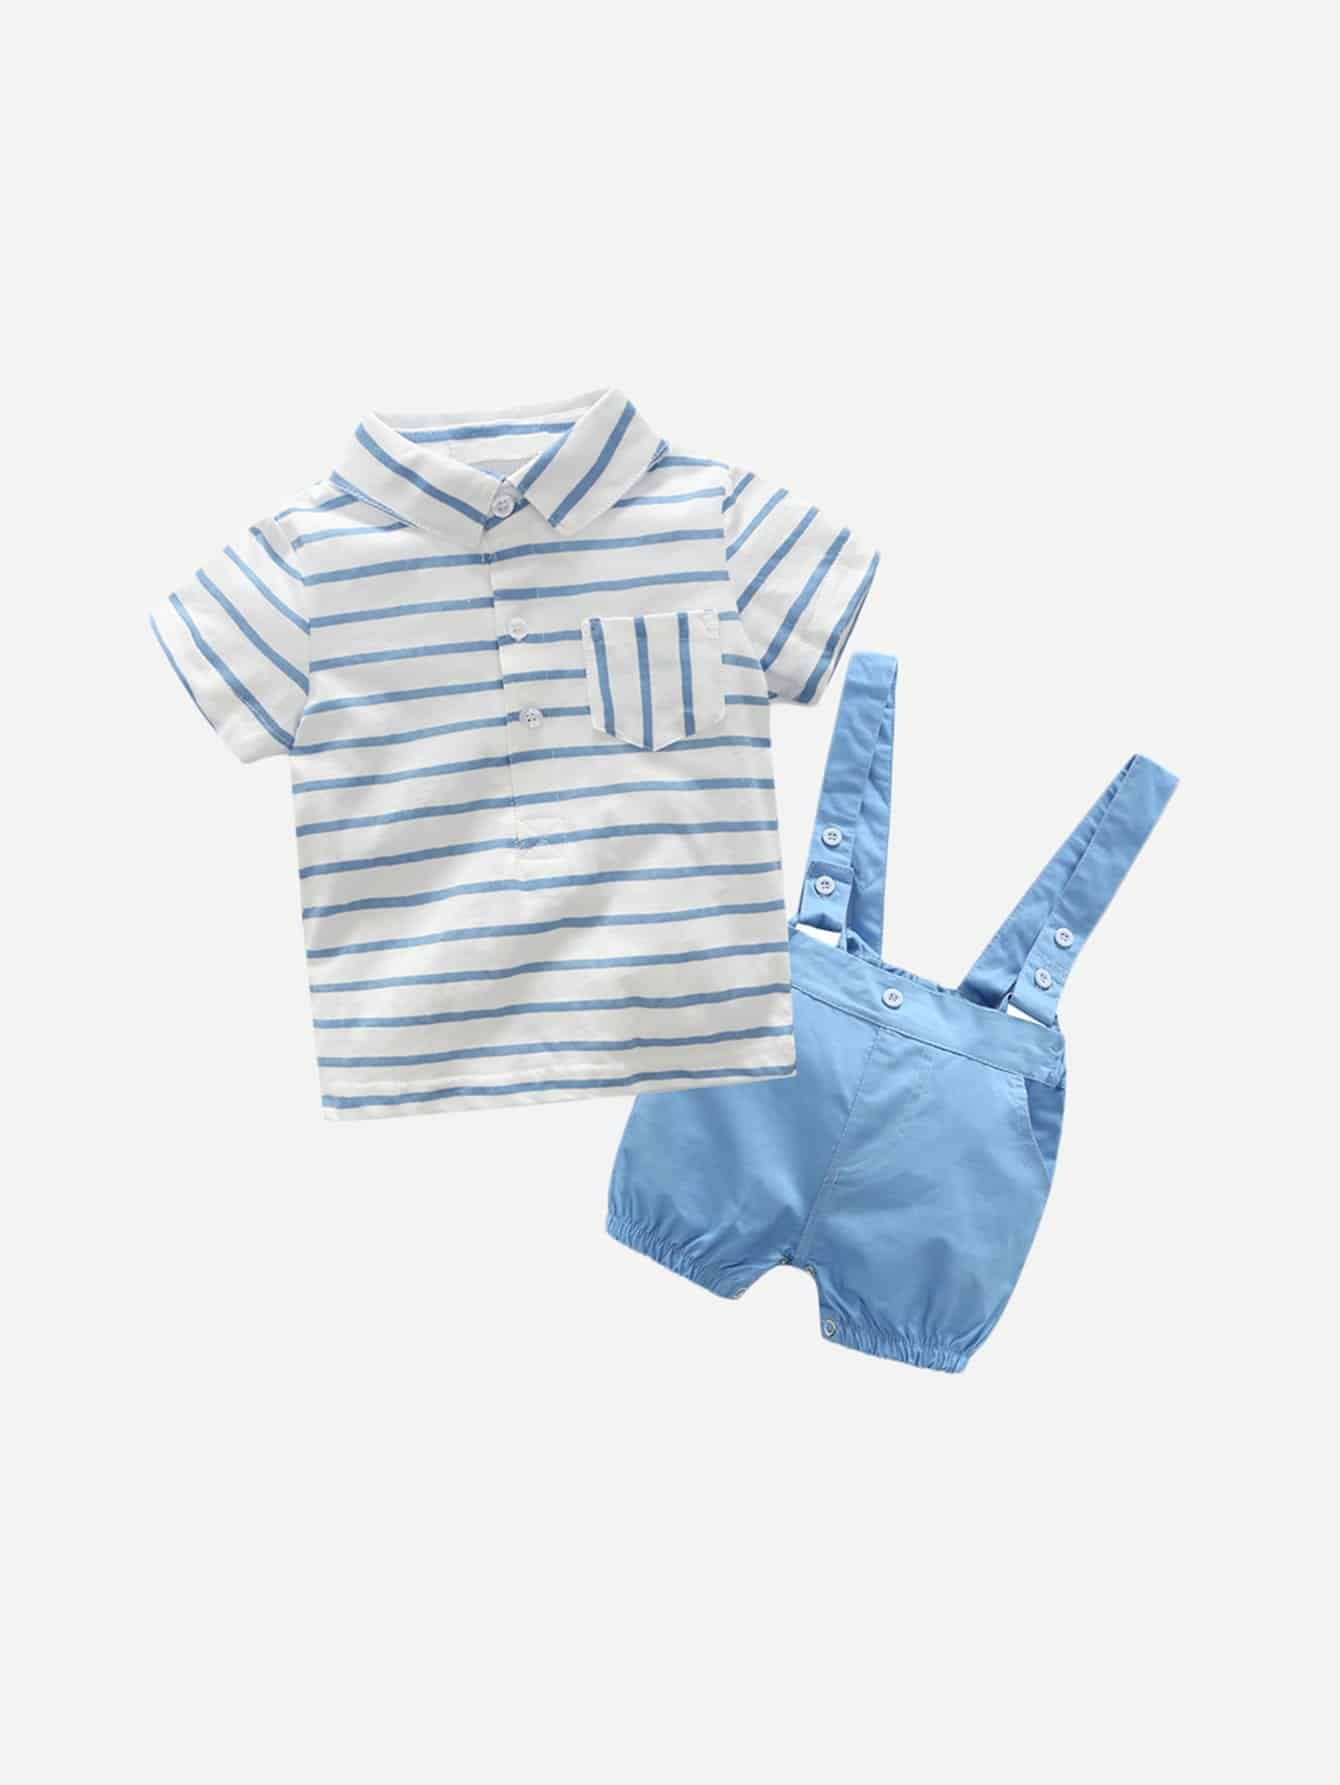 Boys Pocket Front Striped Top With Shorts striped front pocket tank top